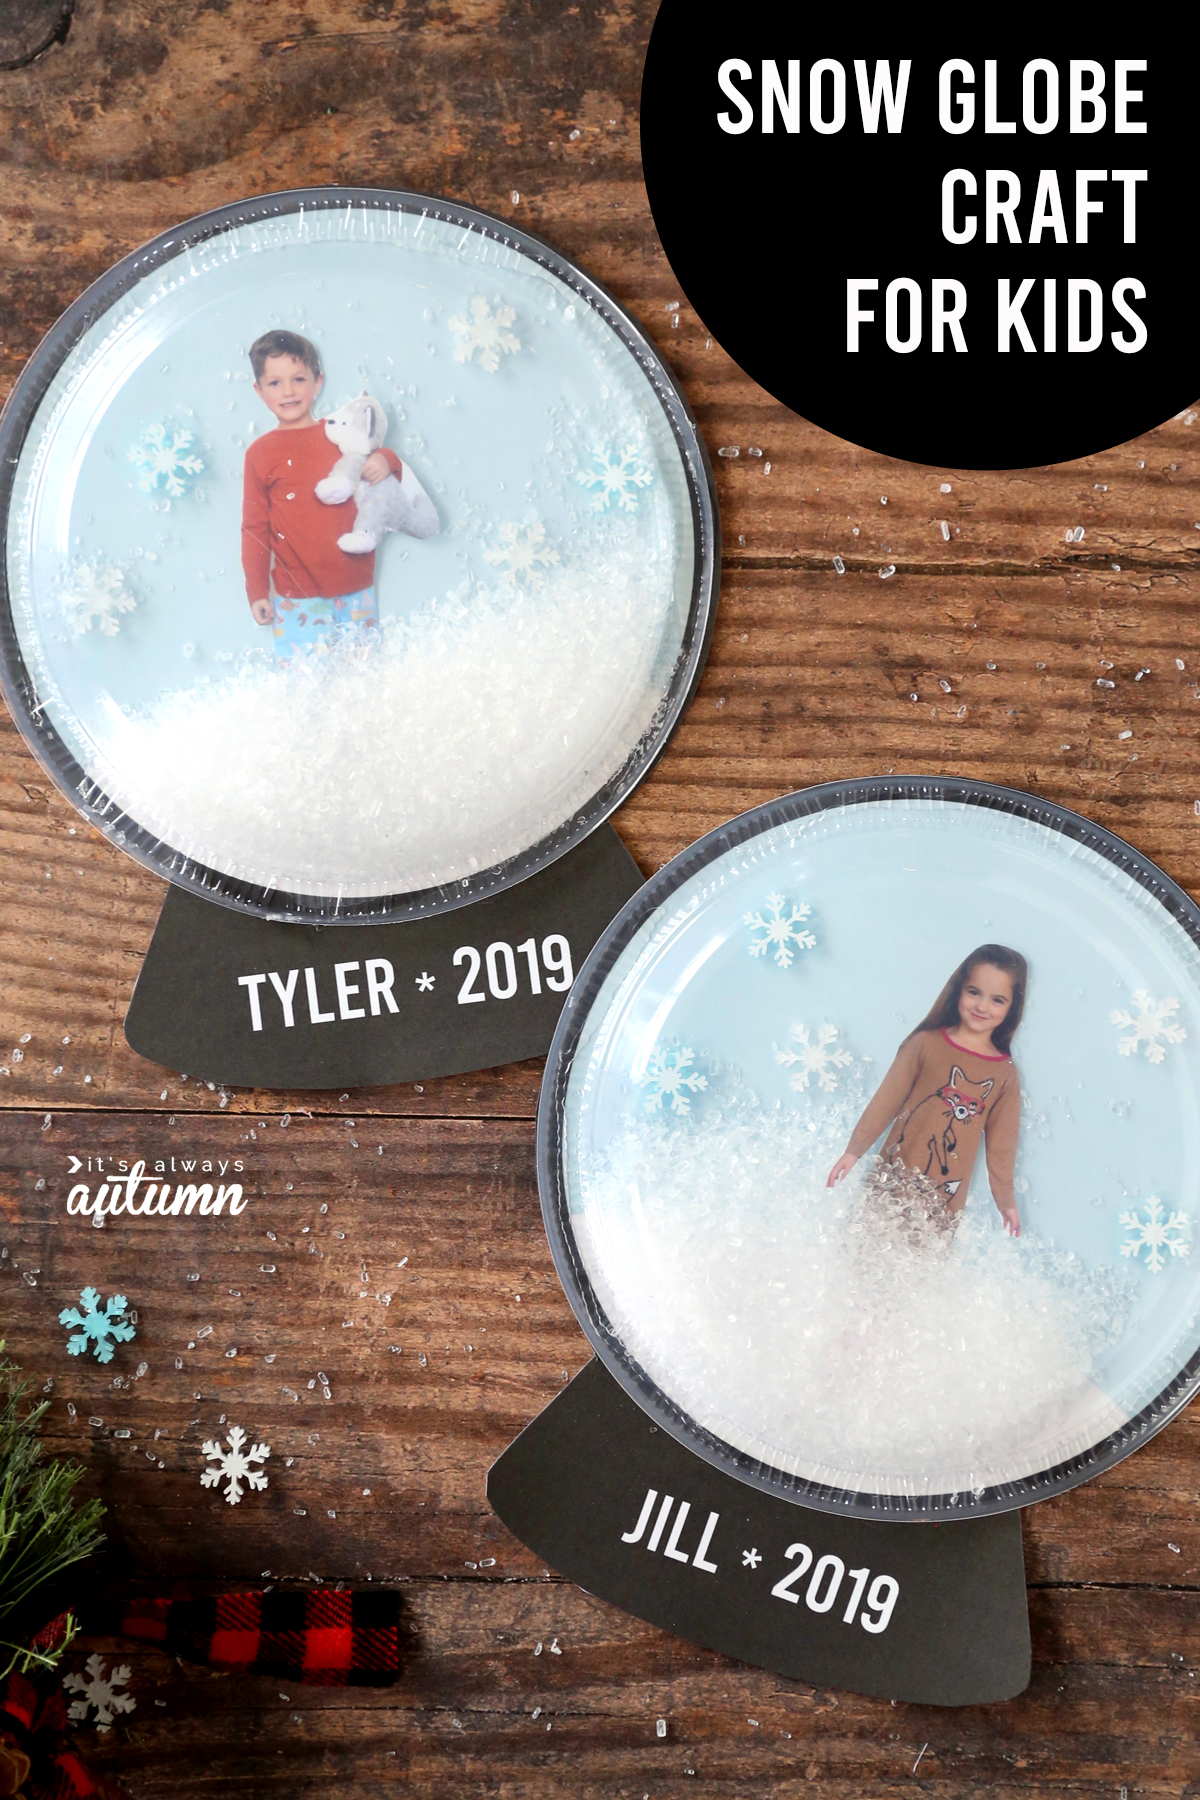 Cute photo snow globe craft for kids! Fun winter kids craft idea.